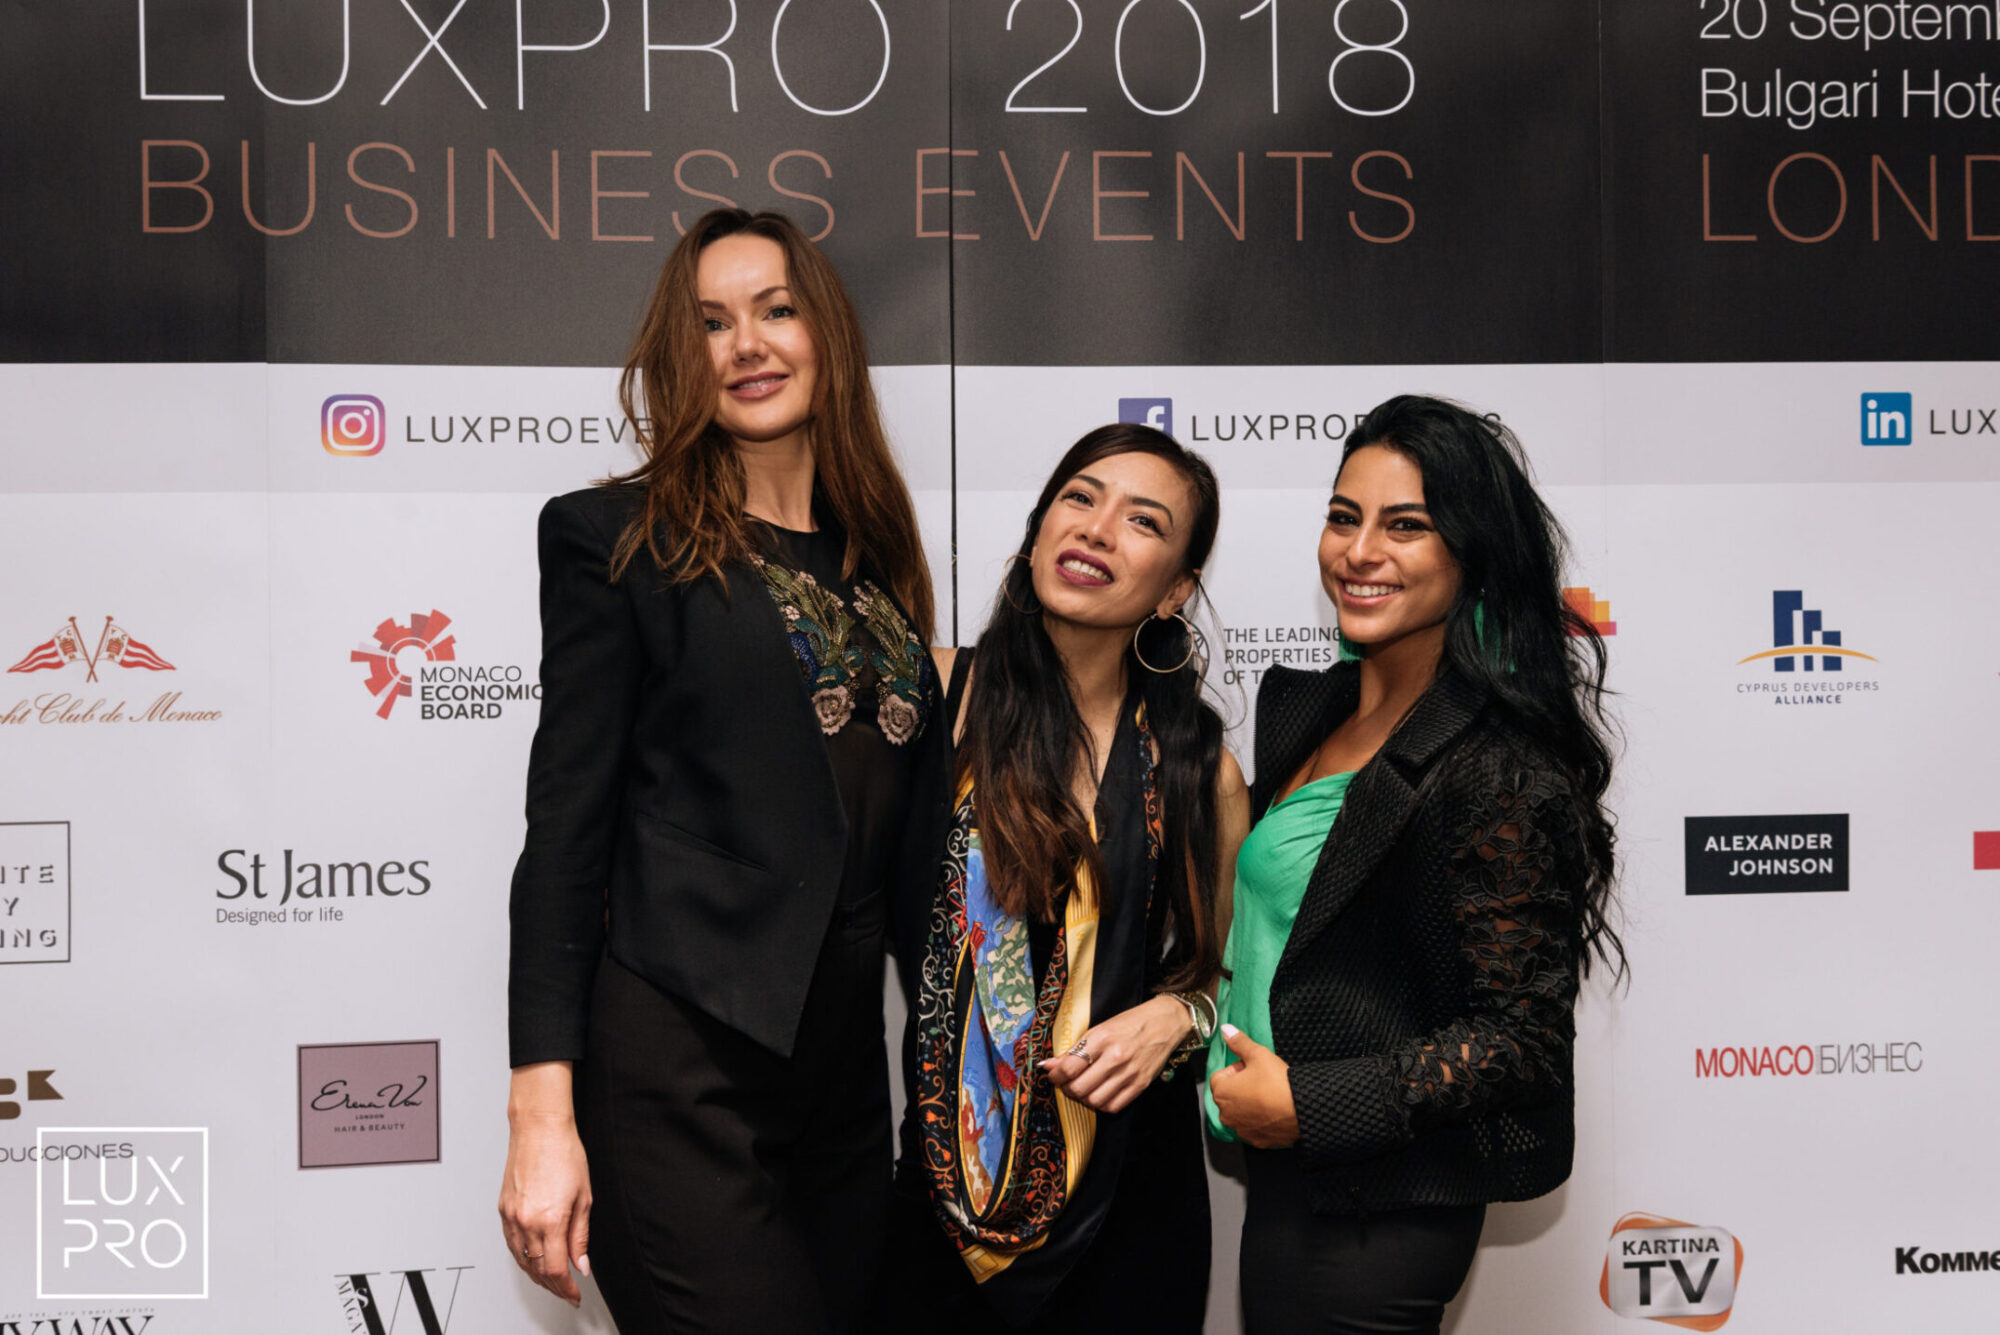 Luxpro London Buvgari